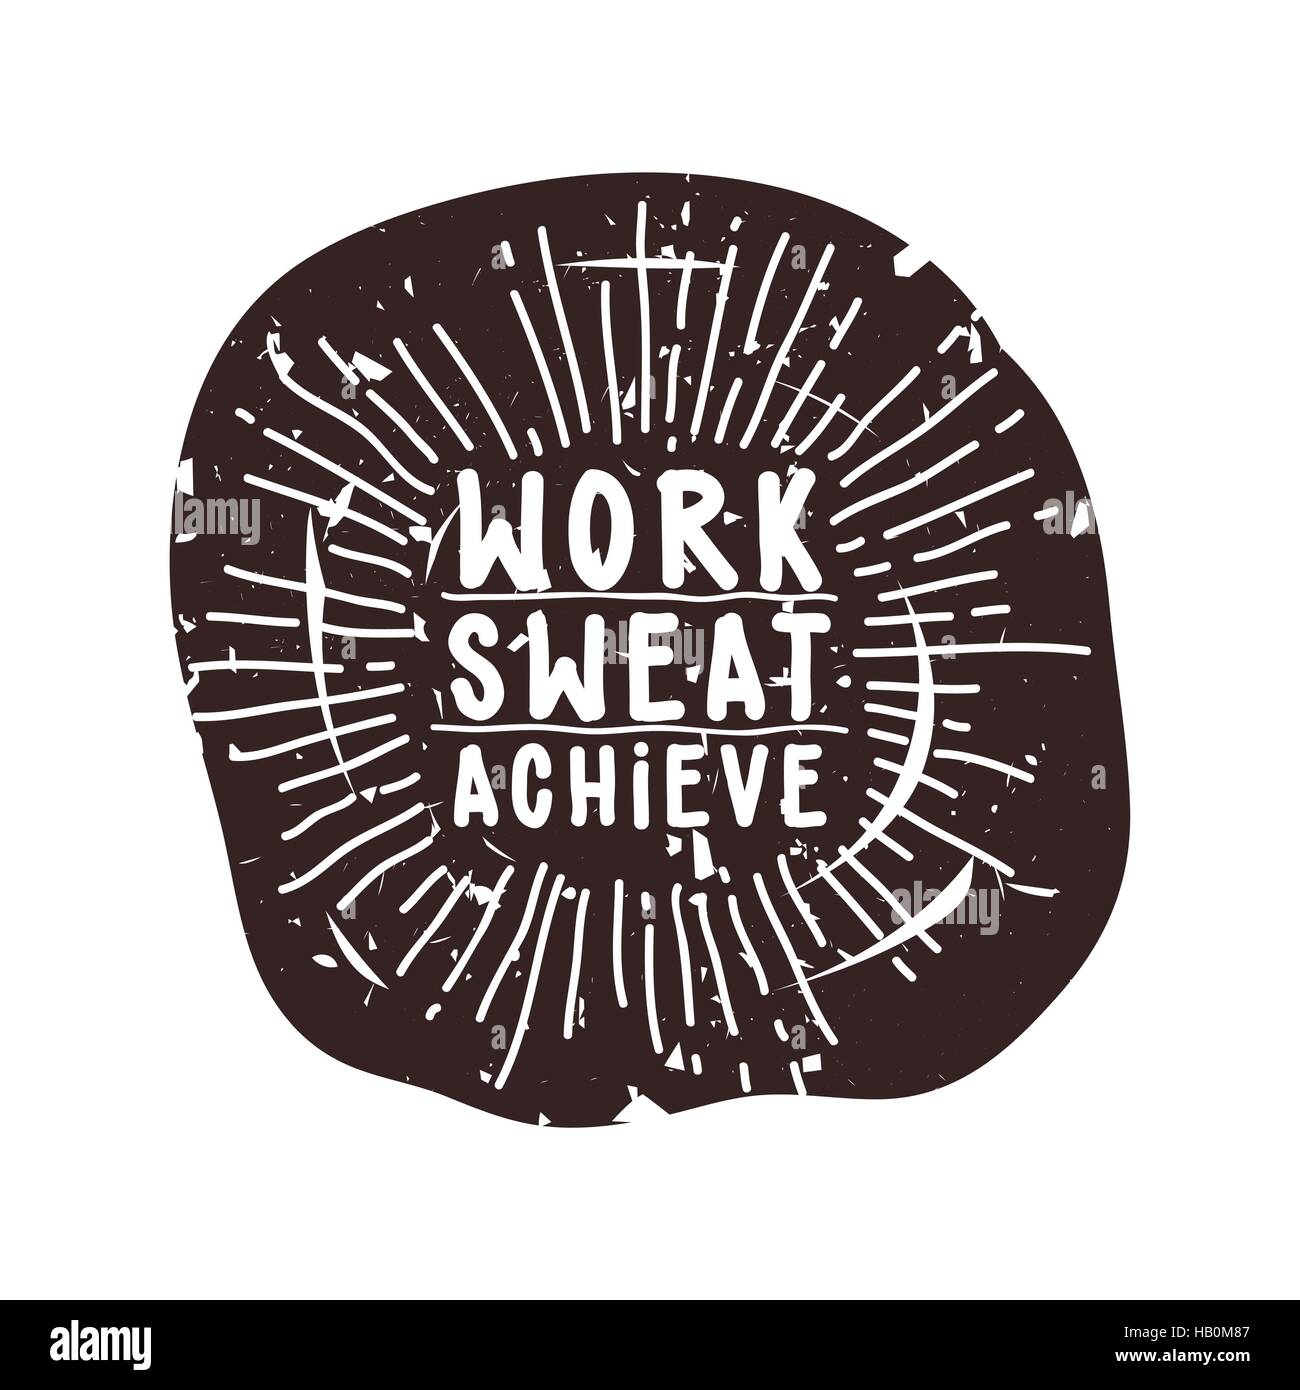 Work sweat achieve - Stock Vector